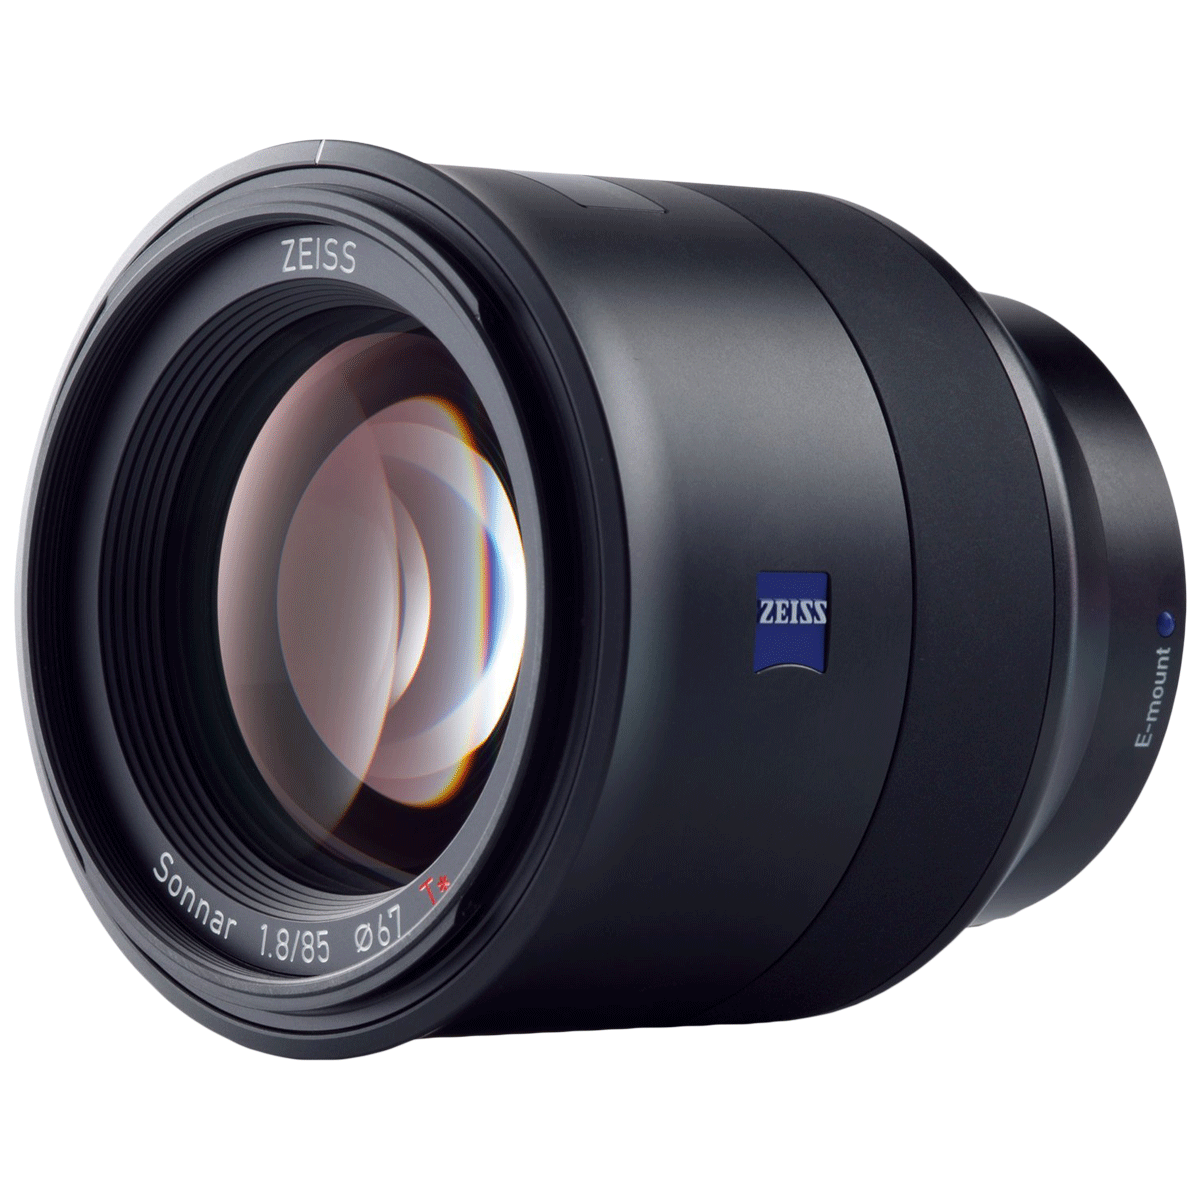 Carl Zeiss Batis 85 mm f/1.8 – f/22 Wide Angle Lens for Sony E-Mount Mirrorless and Full Frame Cameras (Weather and Dust Sealing, 000000-2103-751, Black)_1